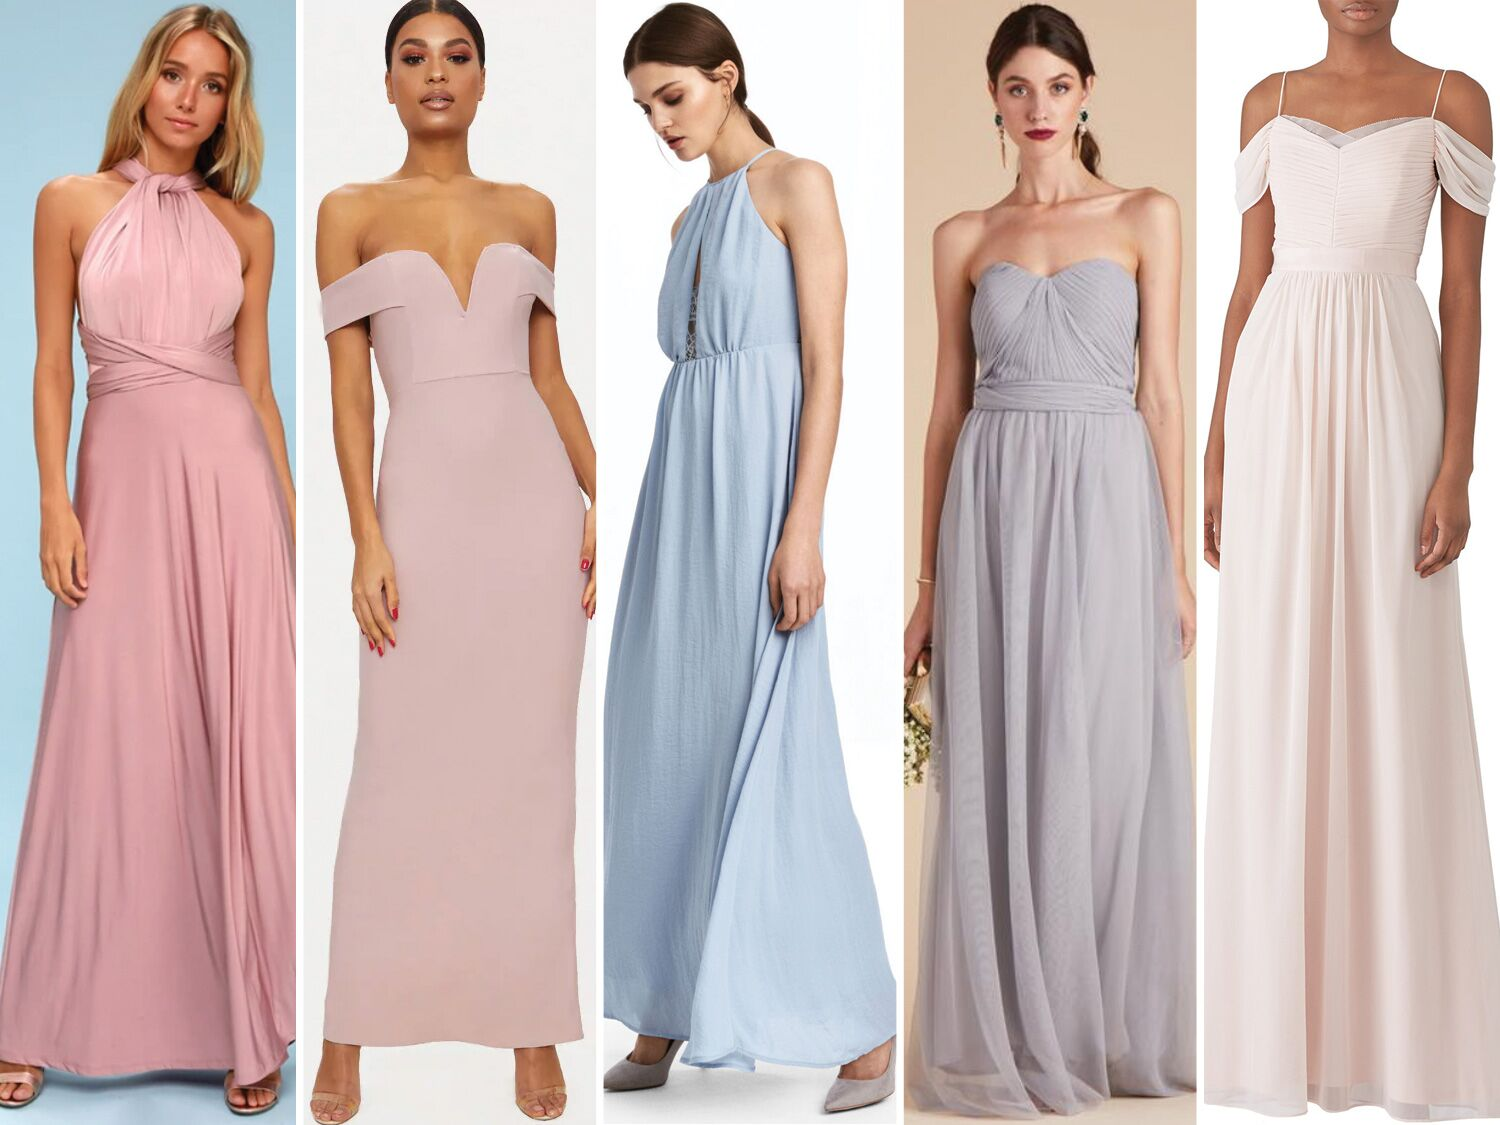 5b5db6cf9e5ee 55 Affordable Bridesmaid Dresses That Don t Look Cheap